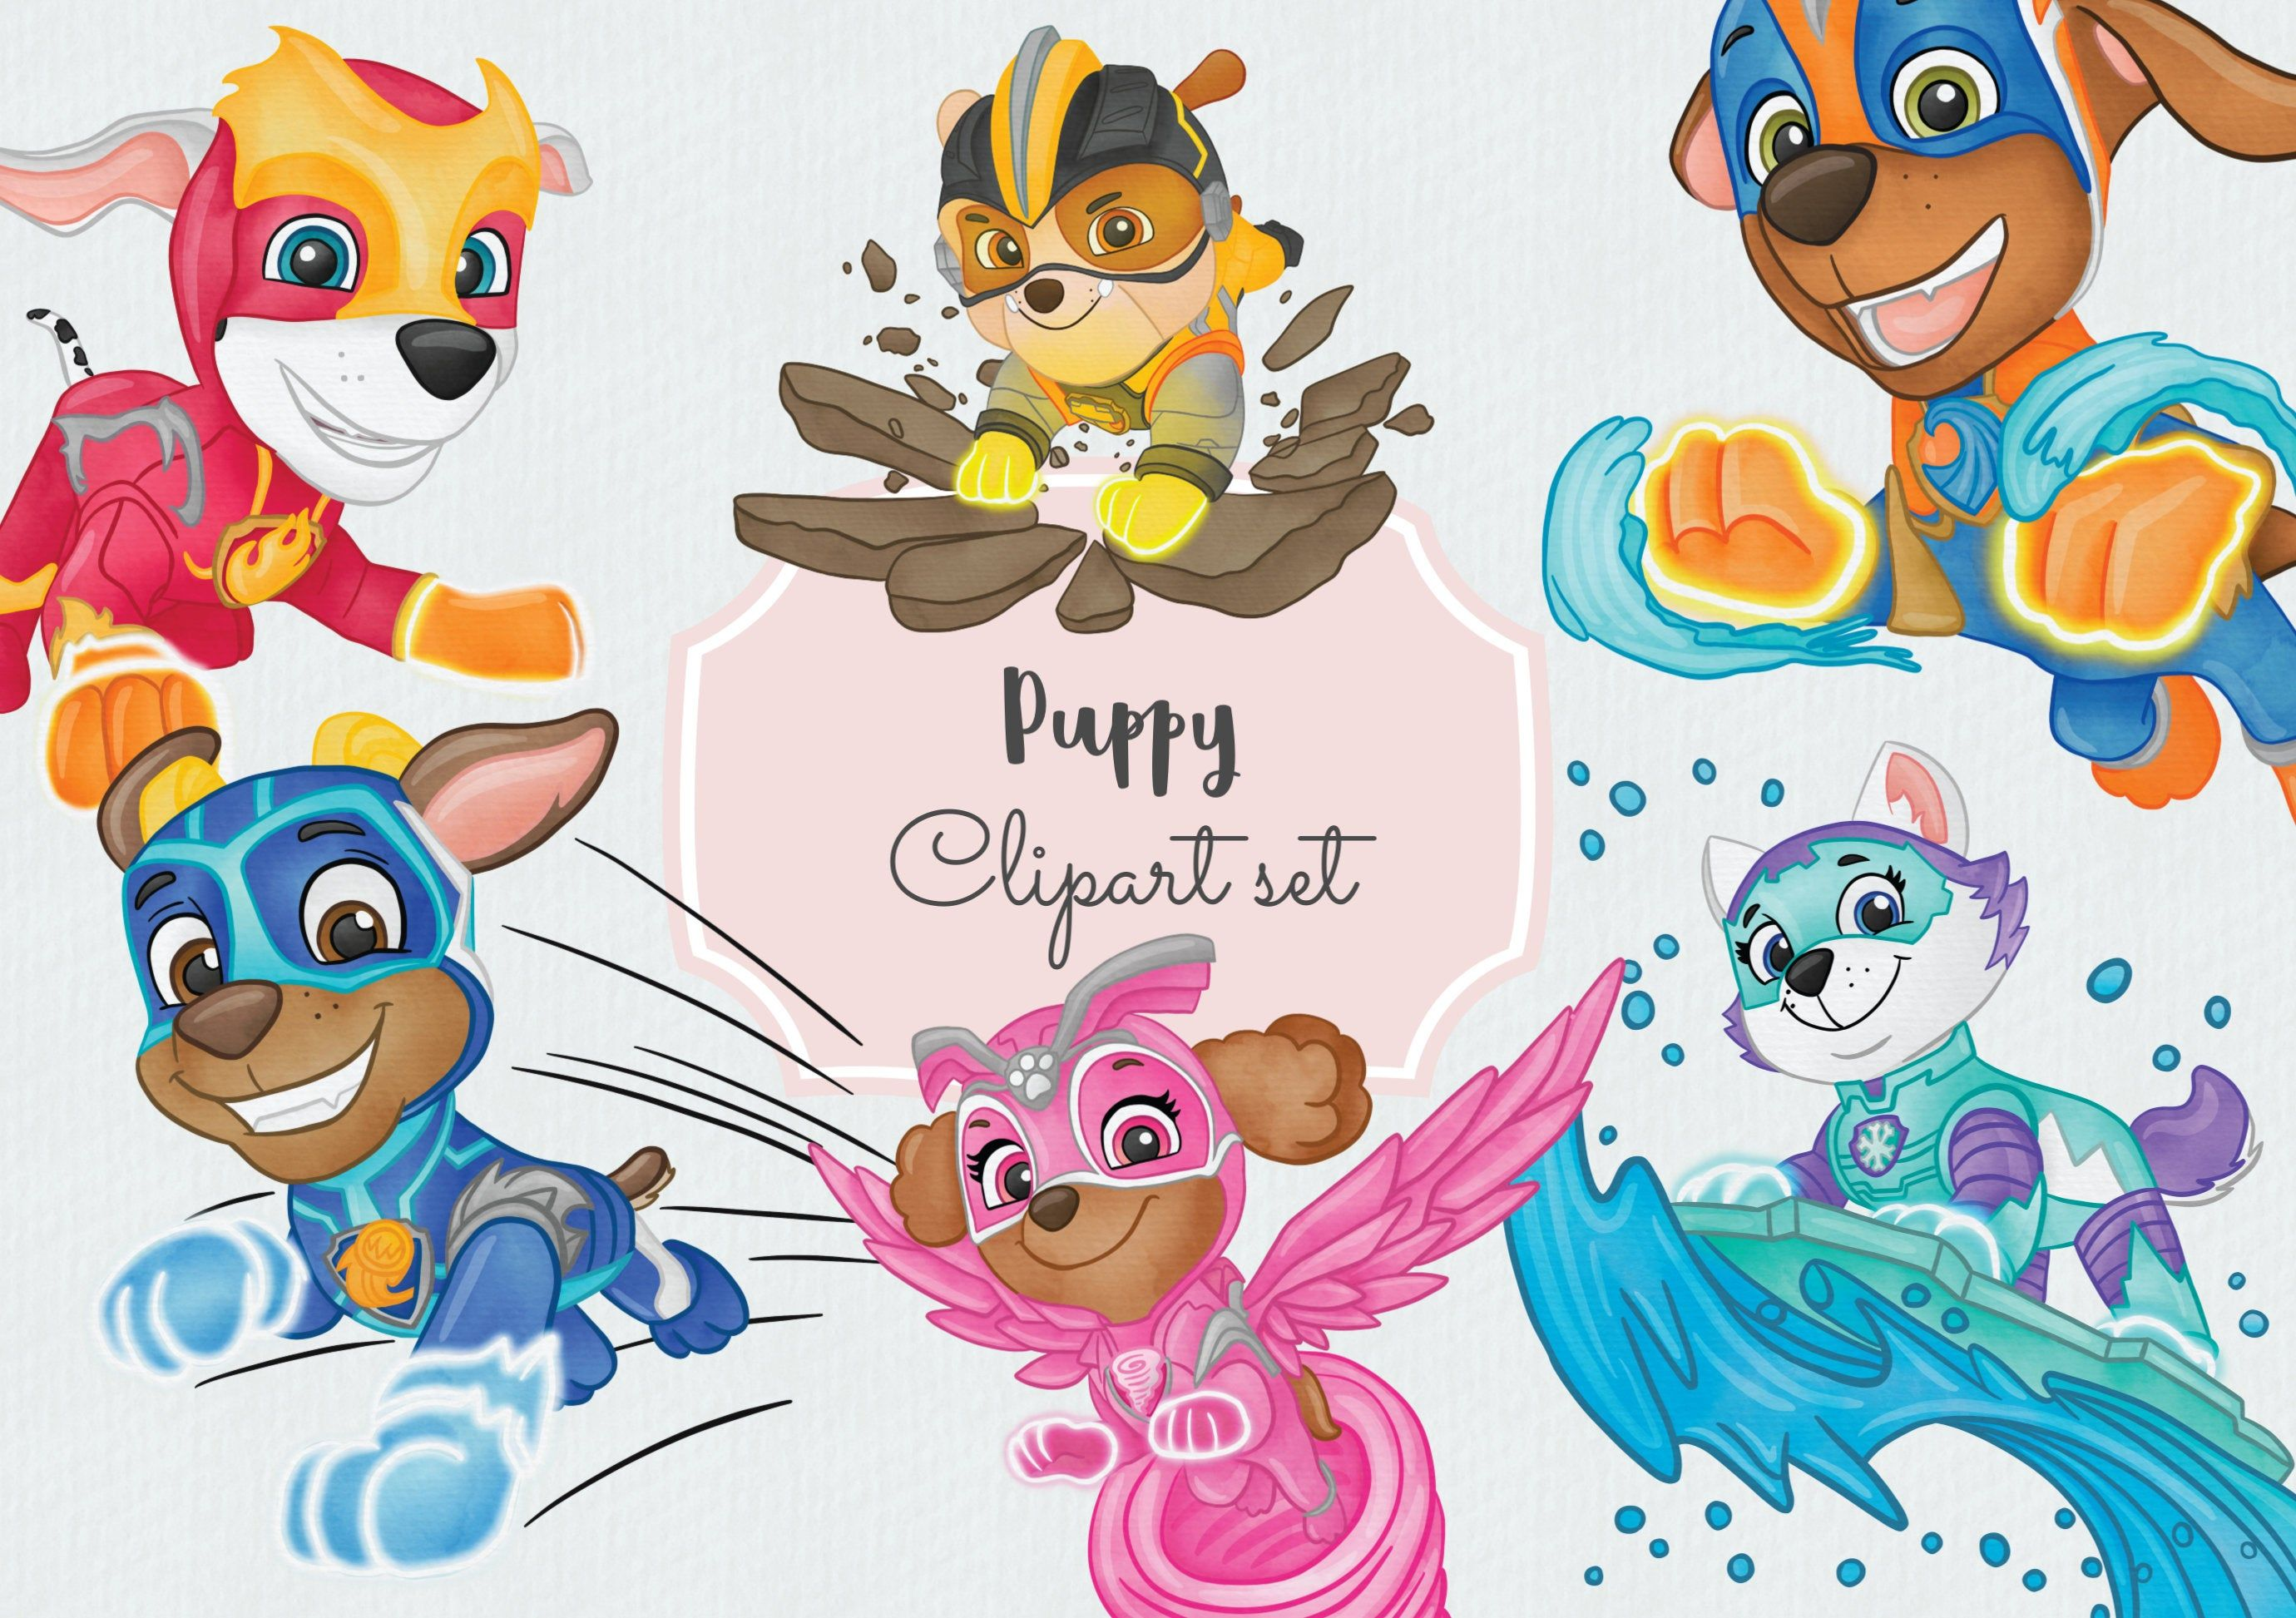 Excited To Share The Latest Addition To My Etsy Shop Watercolor Paw Patrol Mighty Pups Hand Drawn Cl Paw Patrol Birthday Paw Patrol Pups Paw Patrol Super Pup